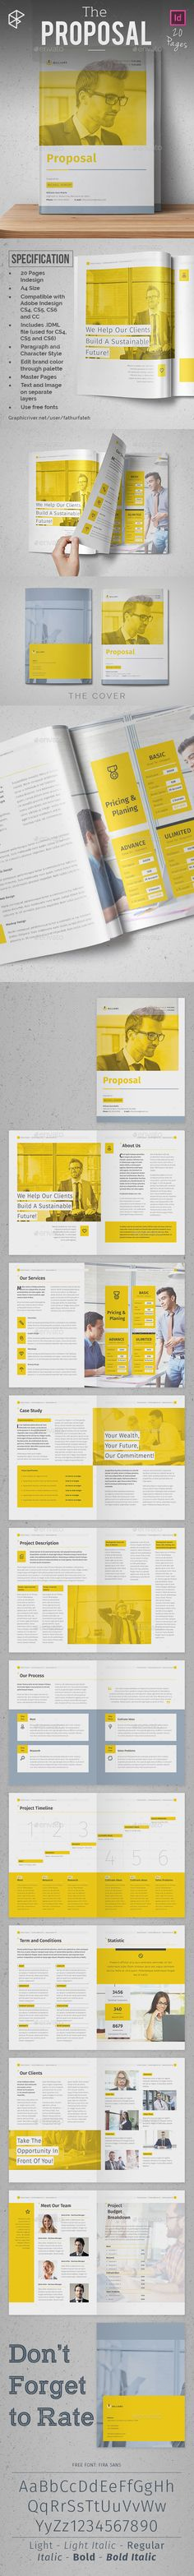 The Proposal Template InDesign INDD. Download here: http://graphicriver.net/item/the-proposal/16021151?ref=ksioks